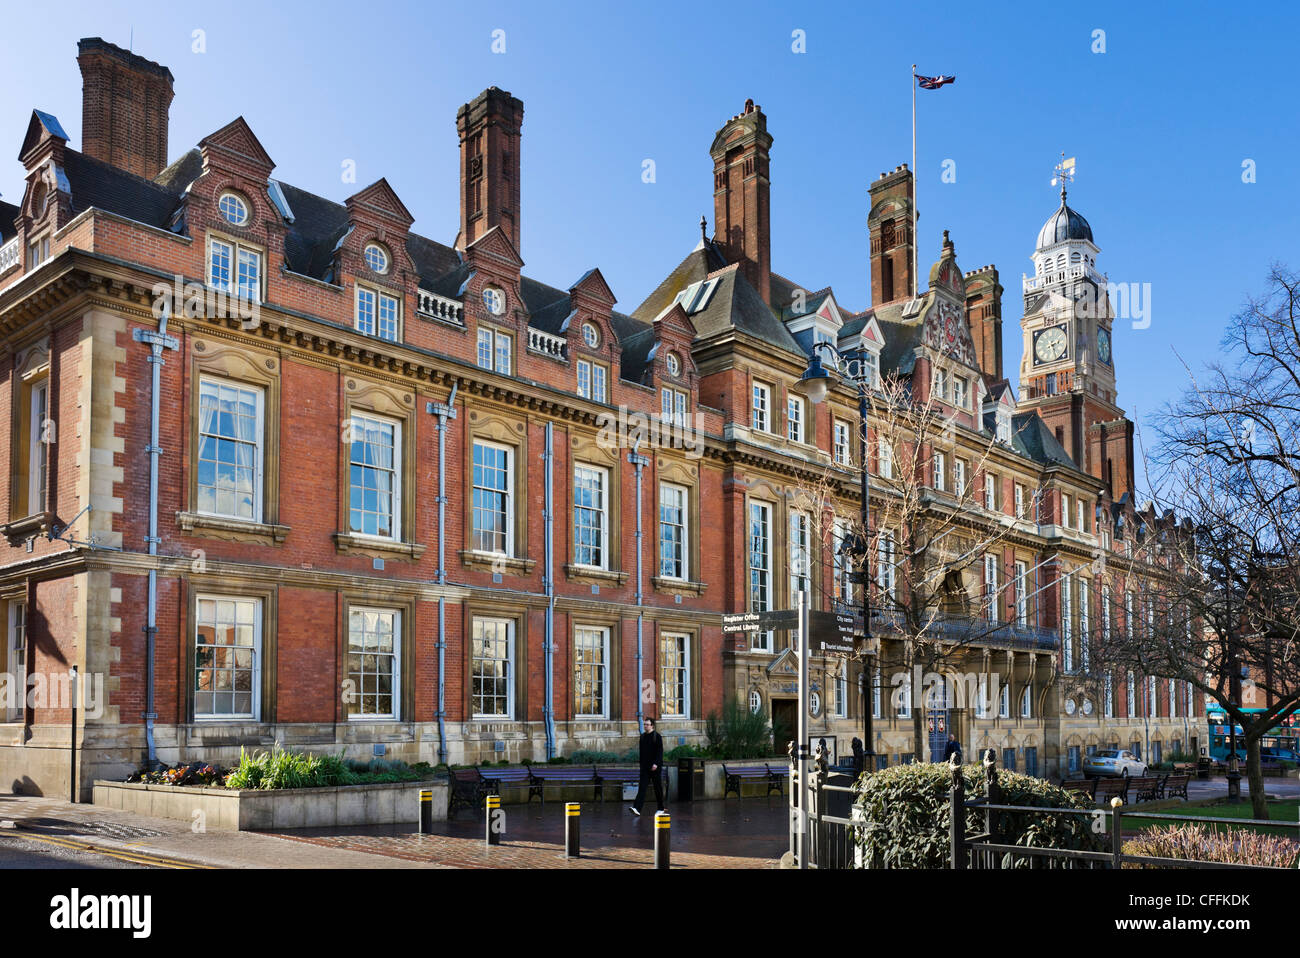 The Town Hall, Town Hall Square, Leicester, Leicestershire, England, UK - Stock Image